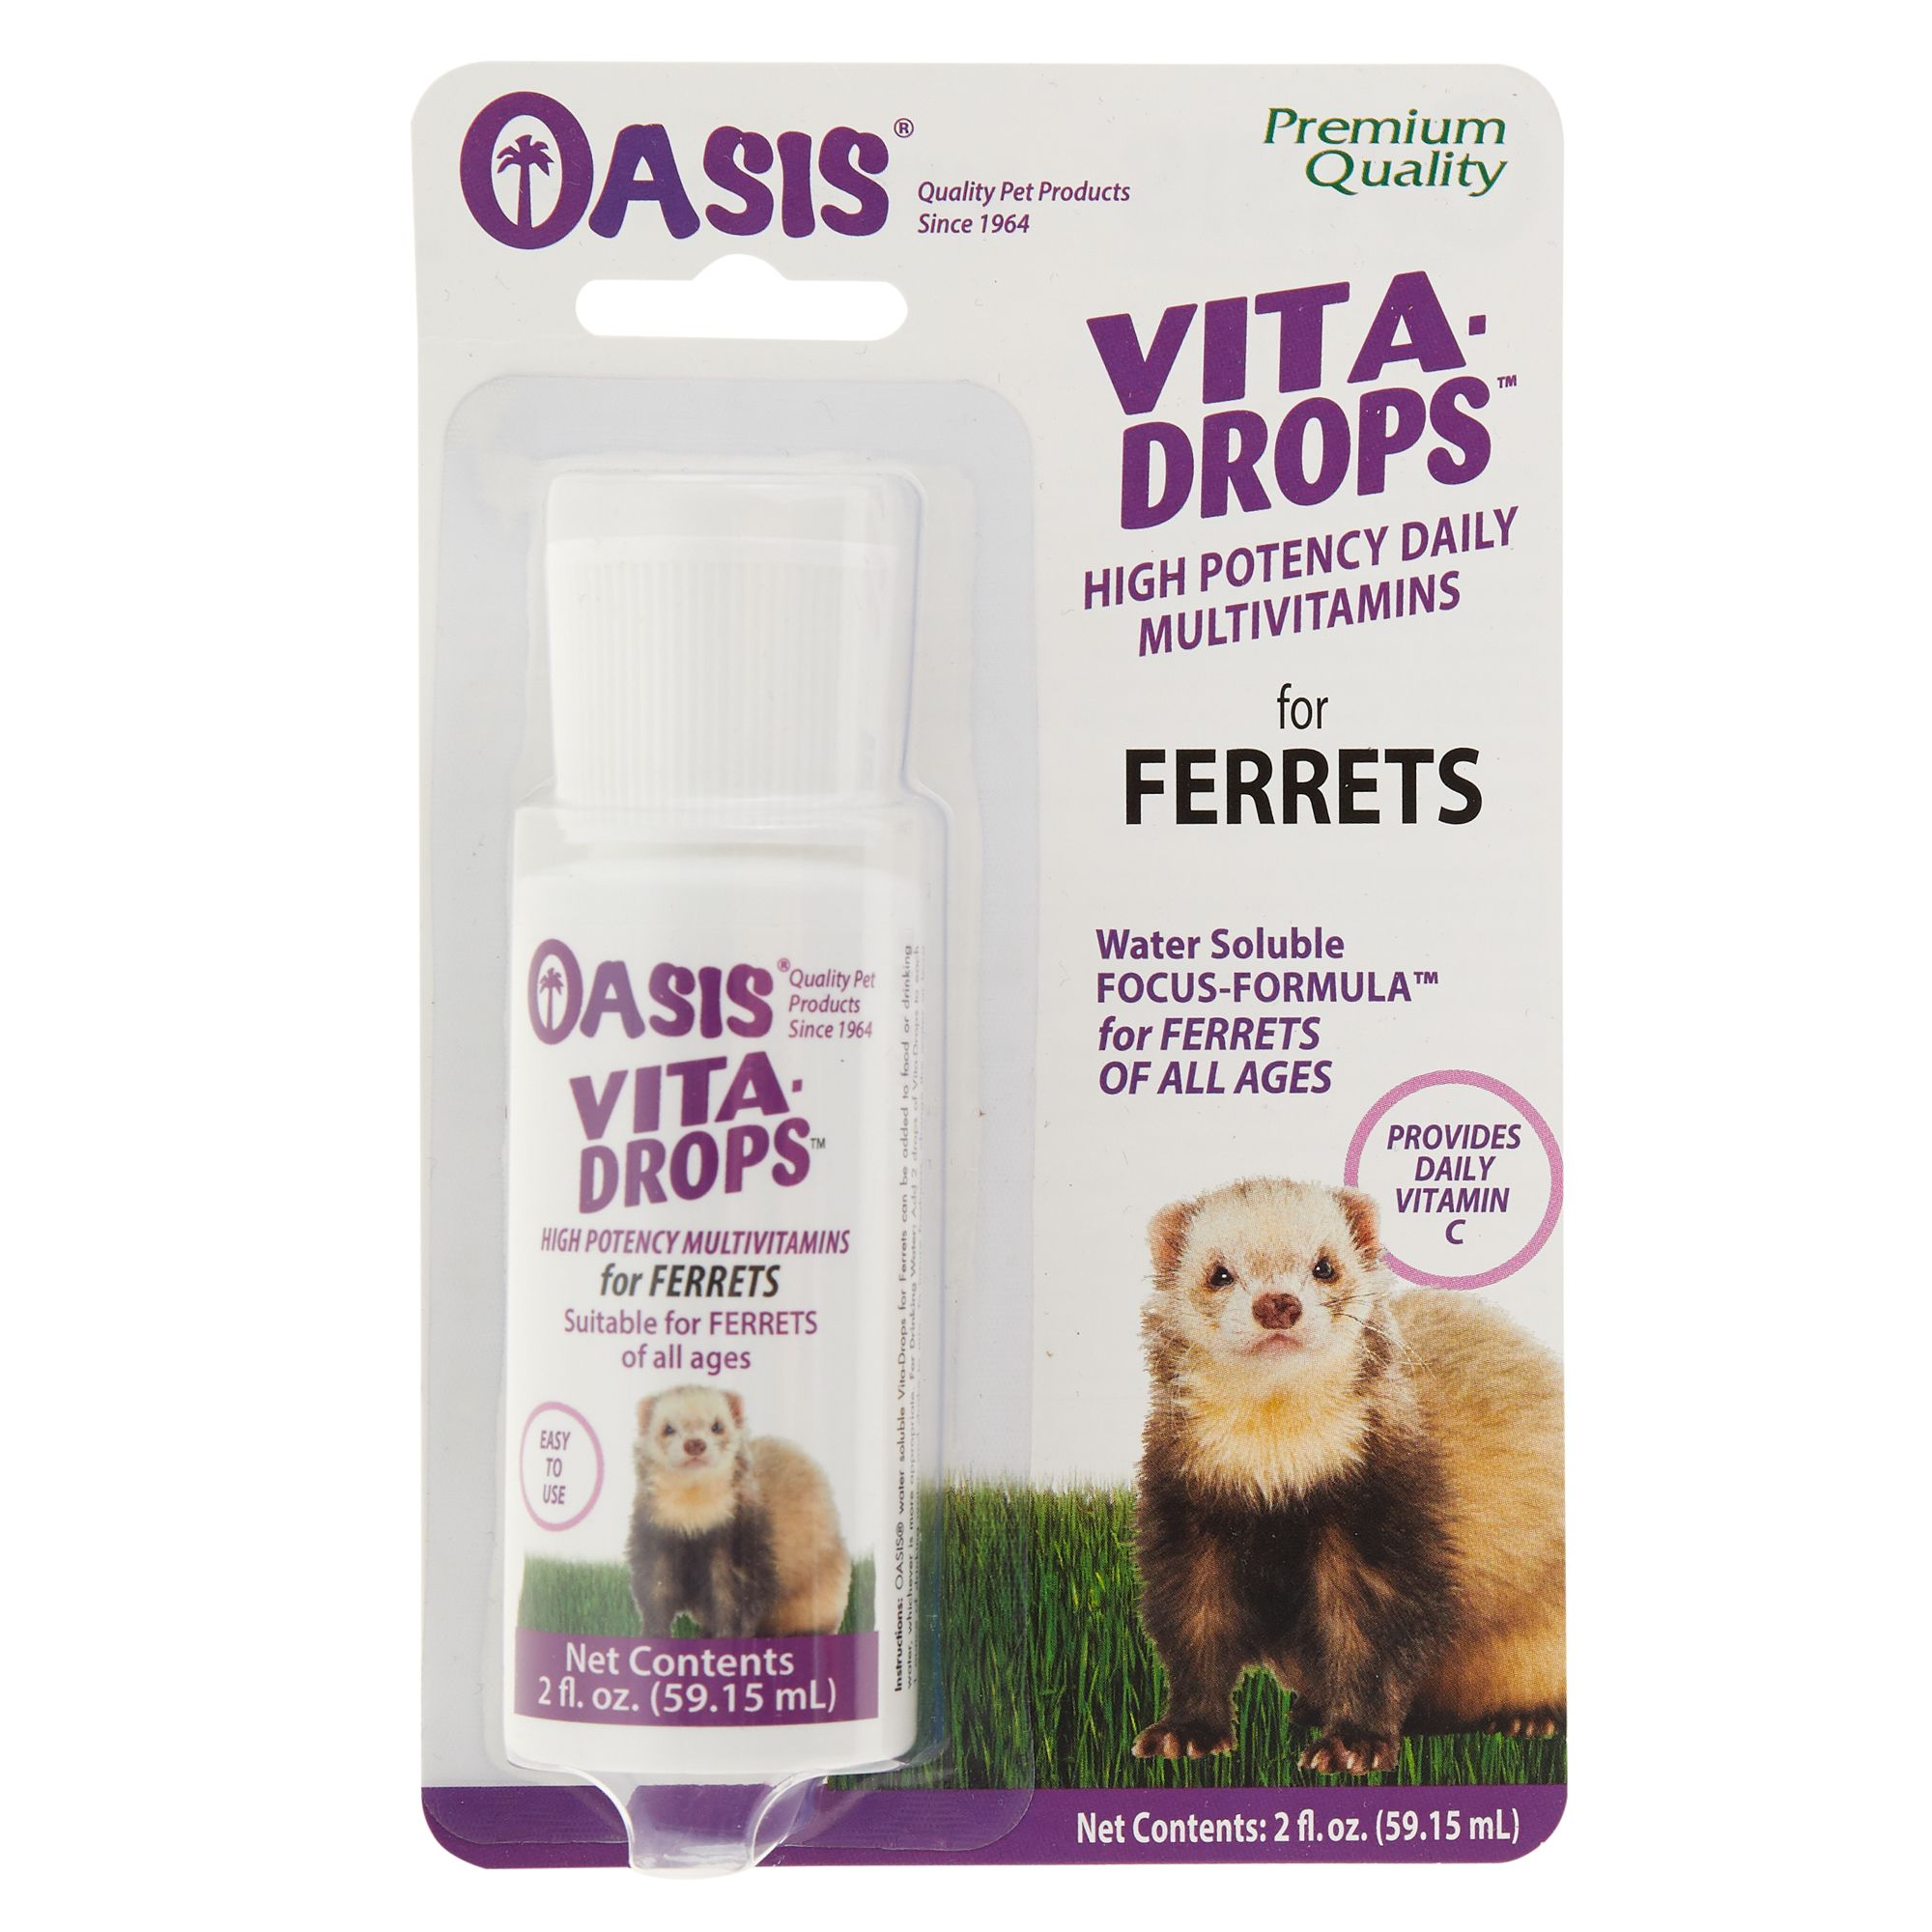 Oasis Vita Drops High Potency Multivitamins Ferret Concentrate